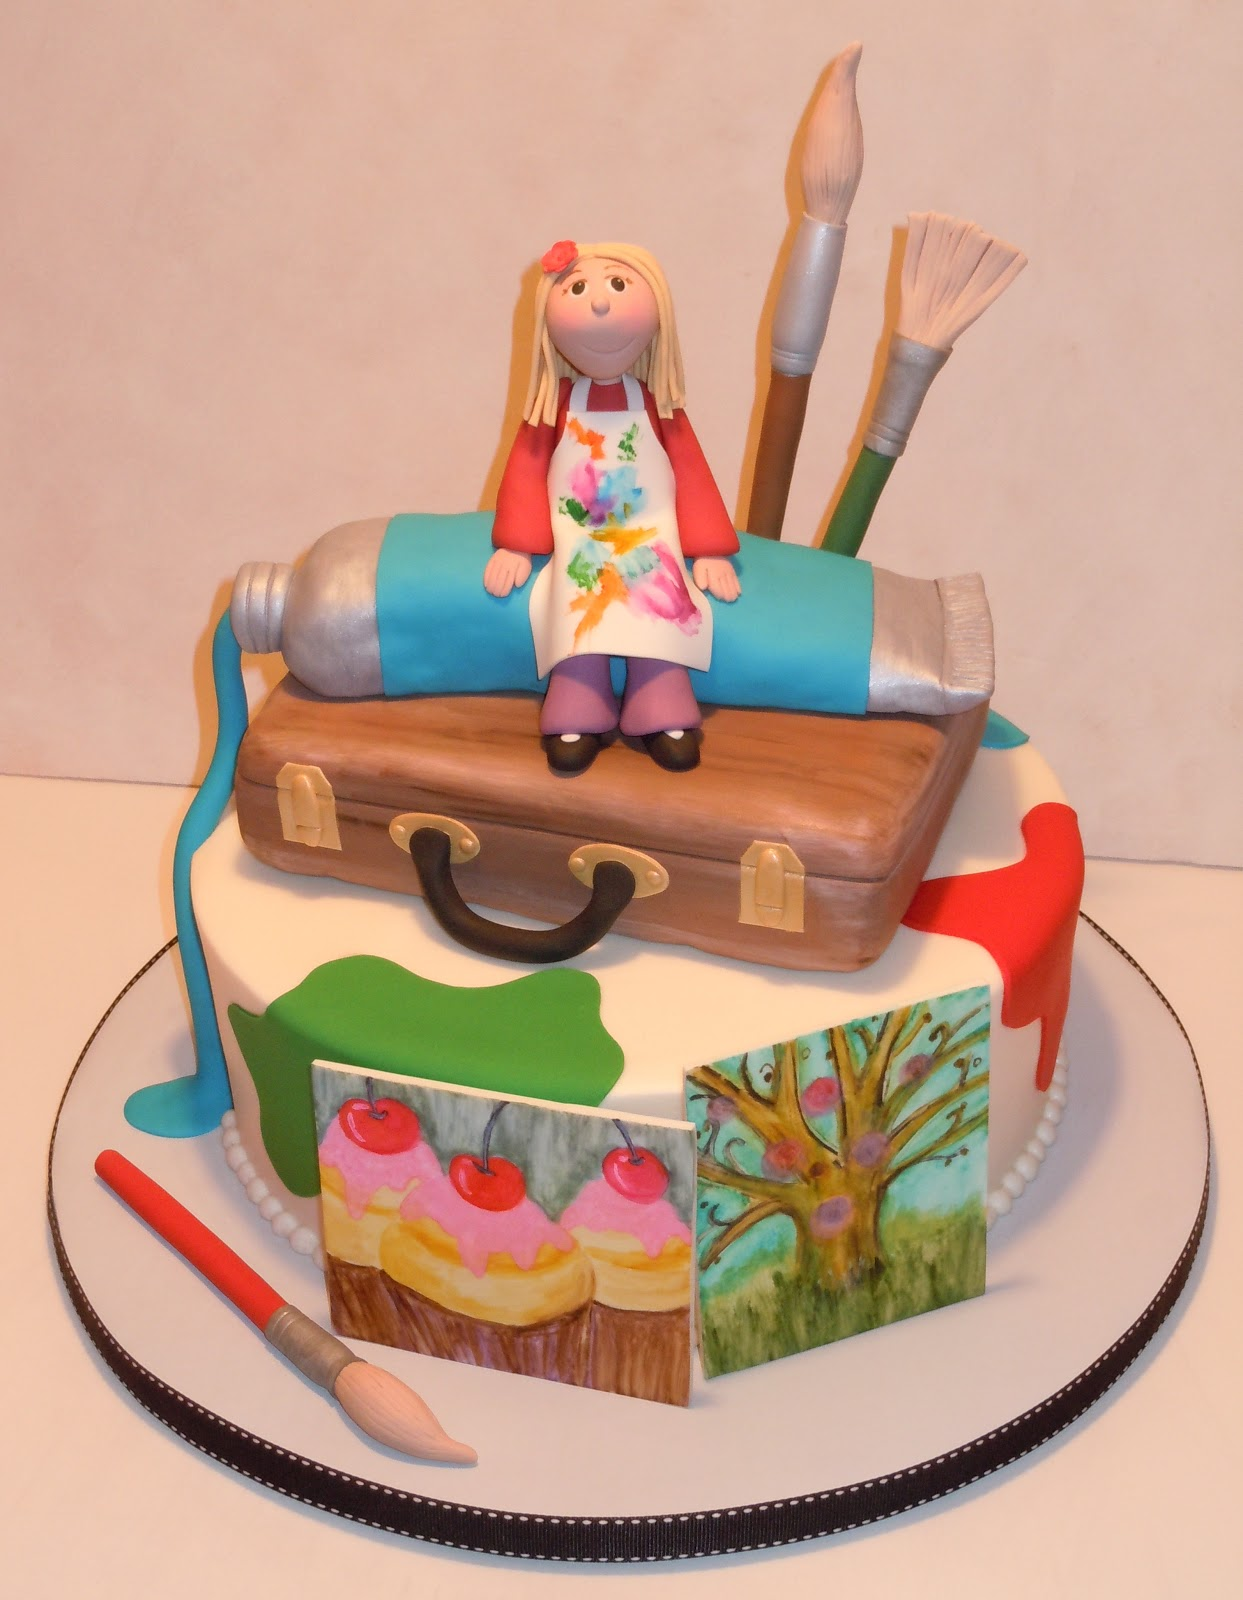 Cake Sculpture Artist : Kids Birthday cakes on Pinterest Rainbow Cakes, Artist ...